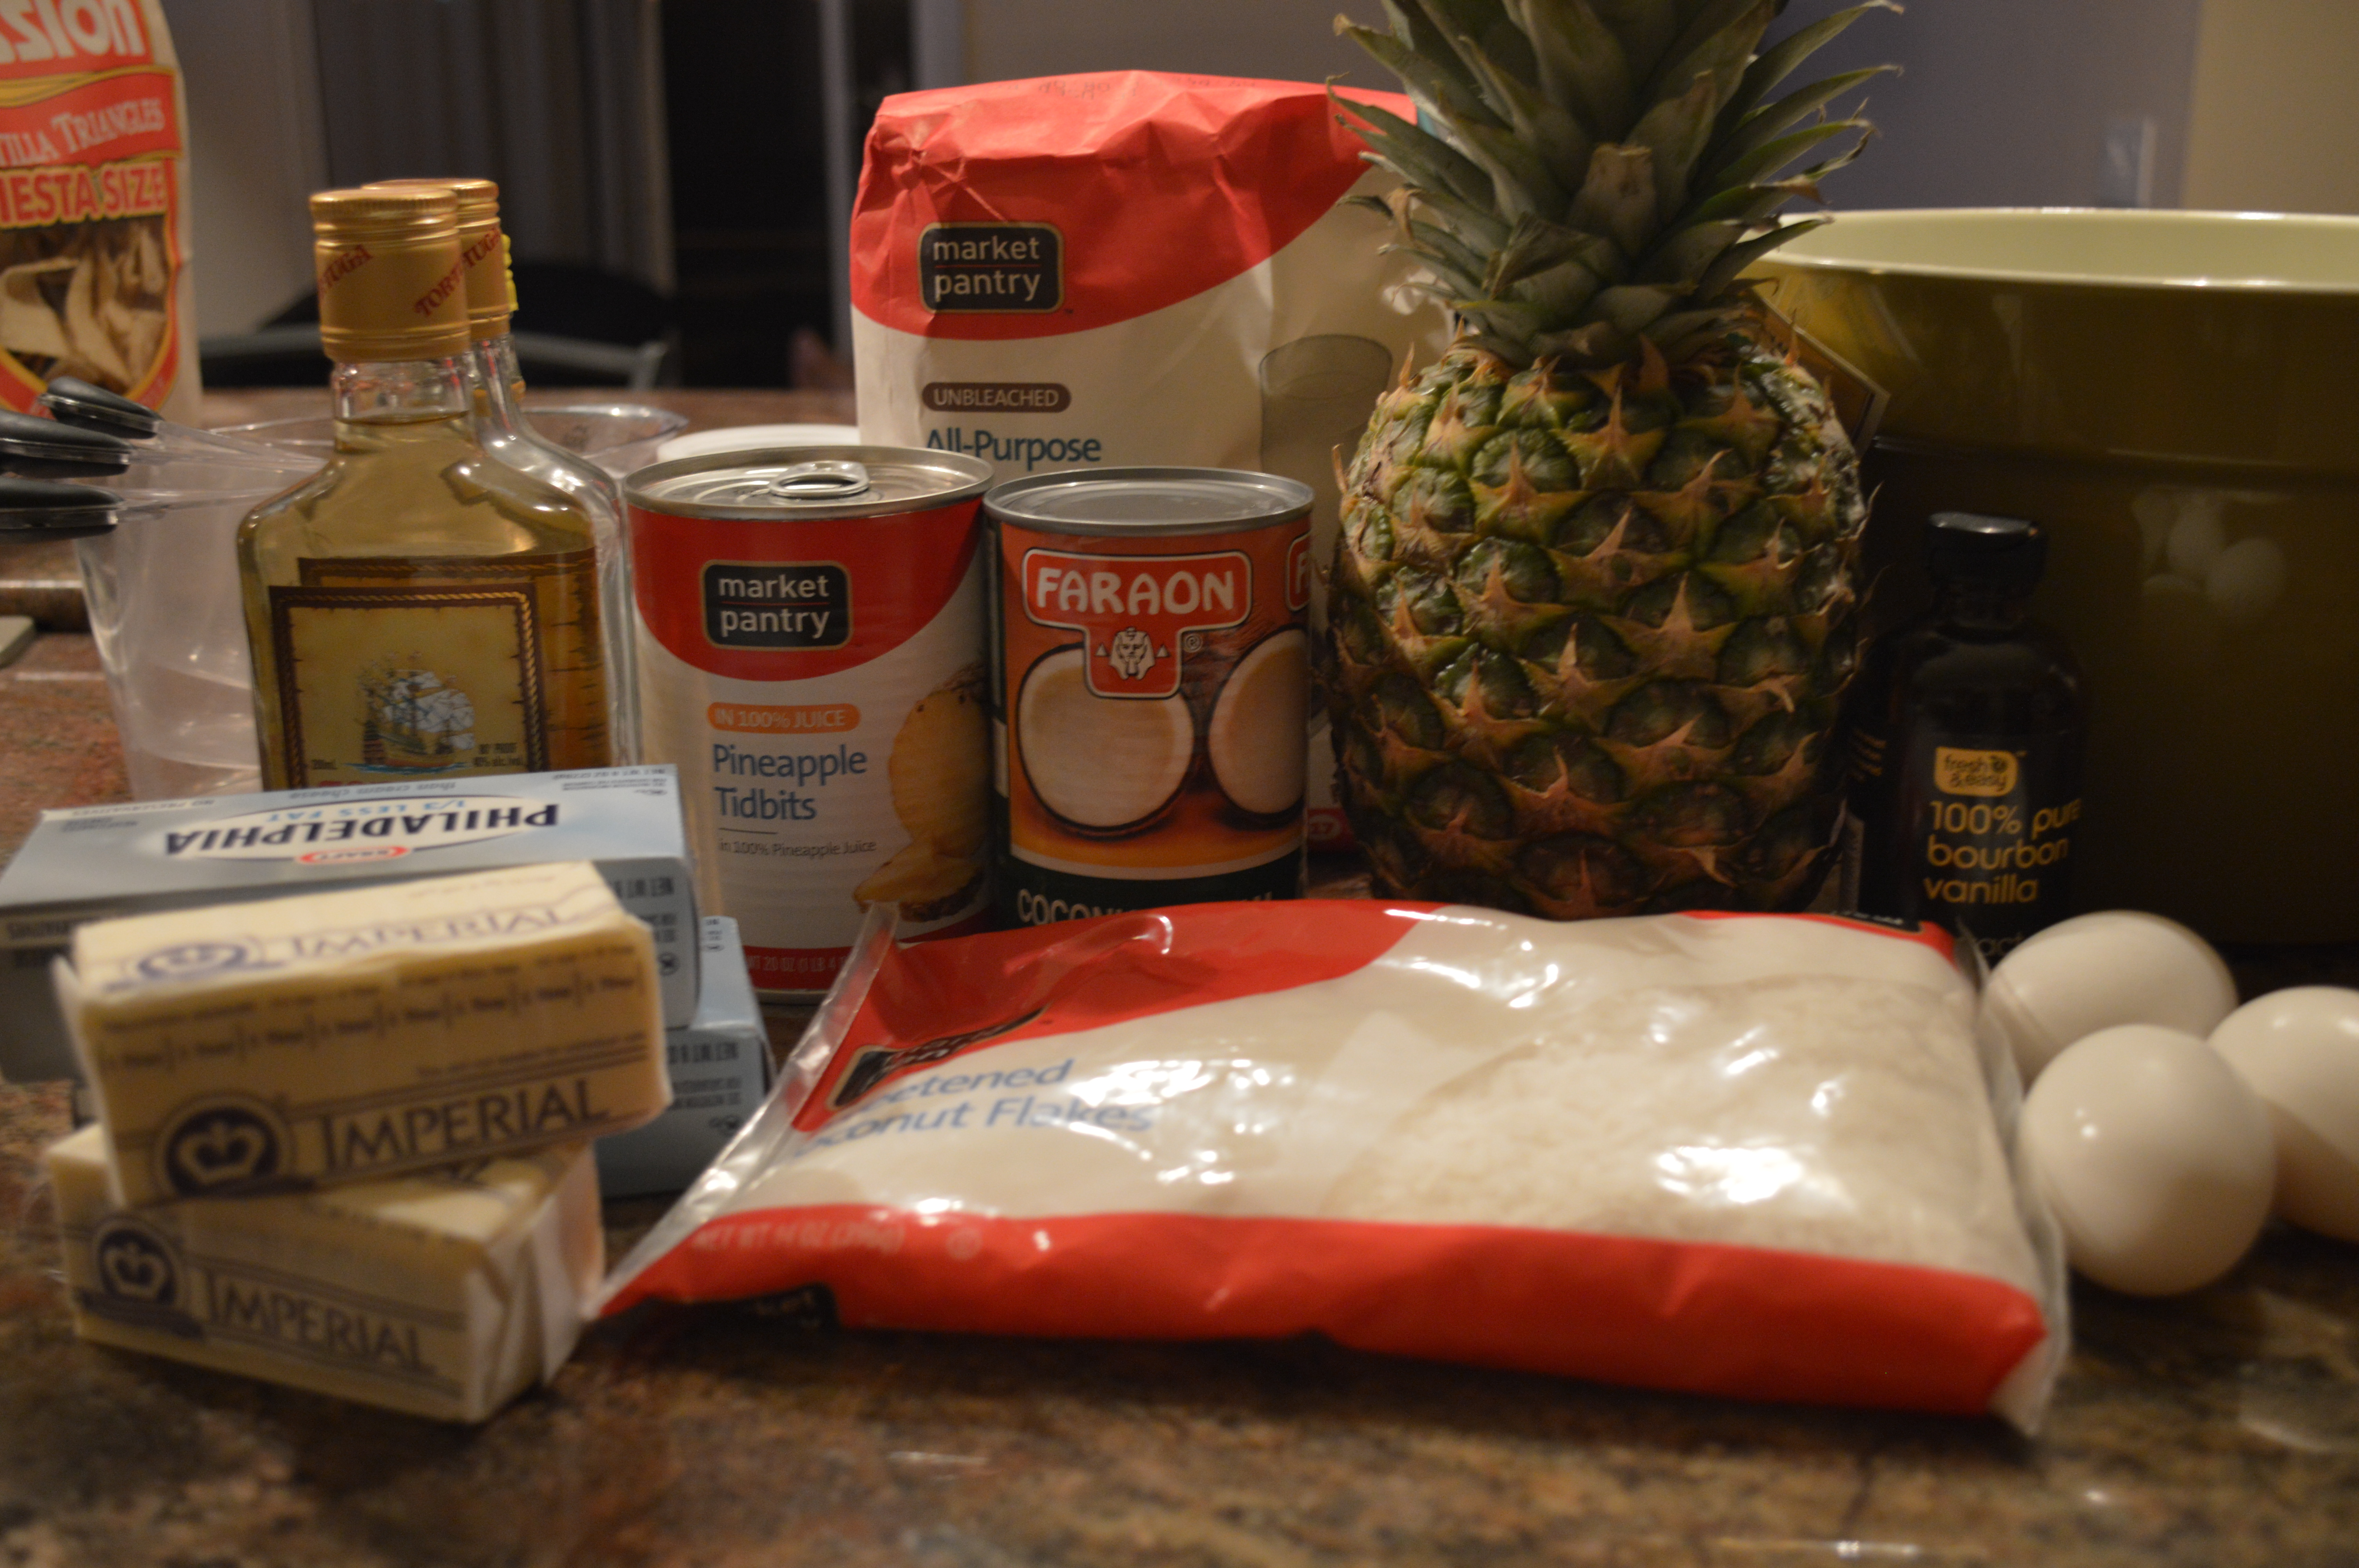 Piña Colada Cupcake Ingredients